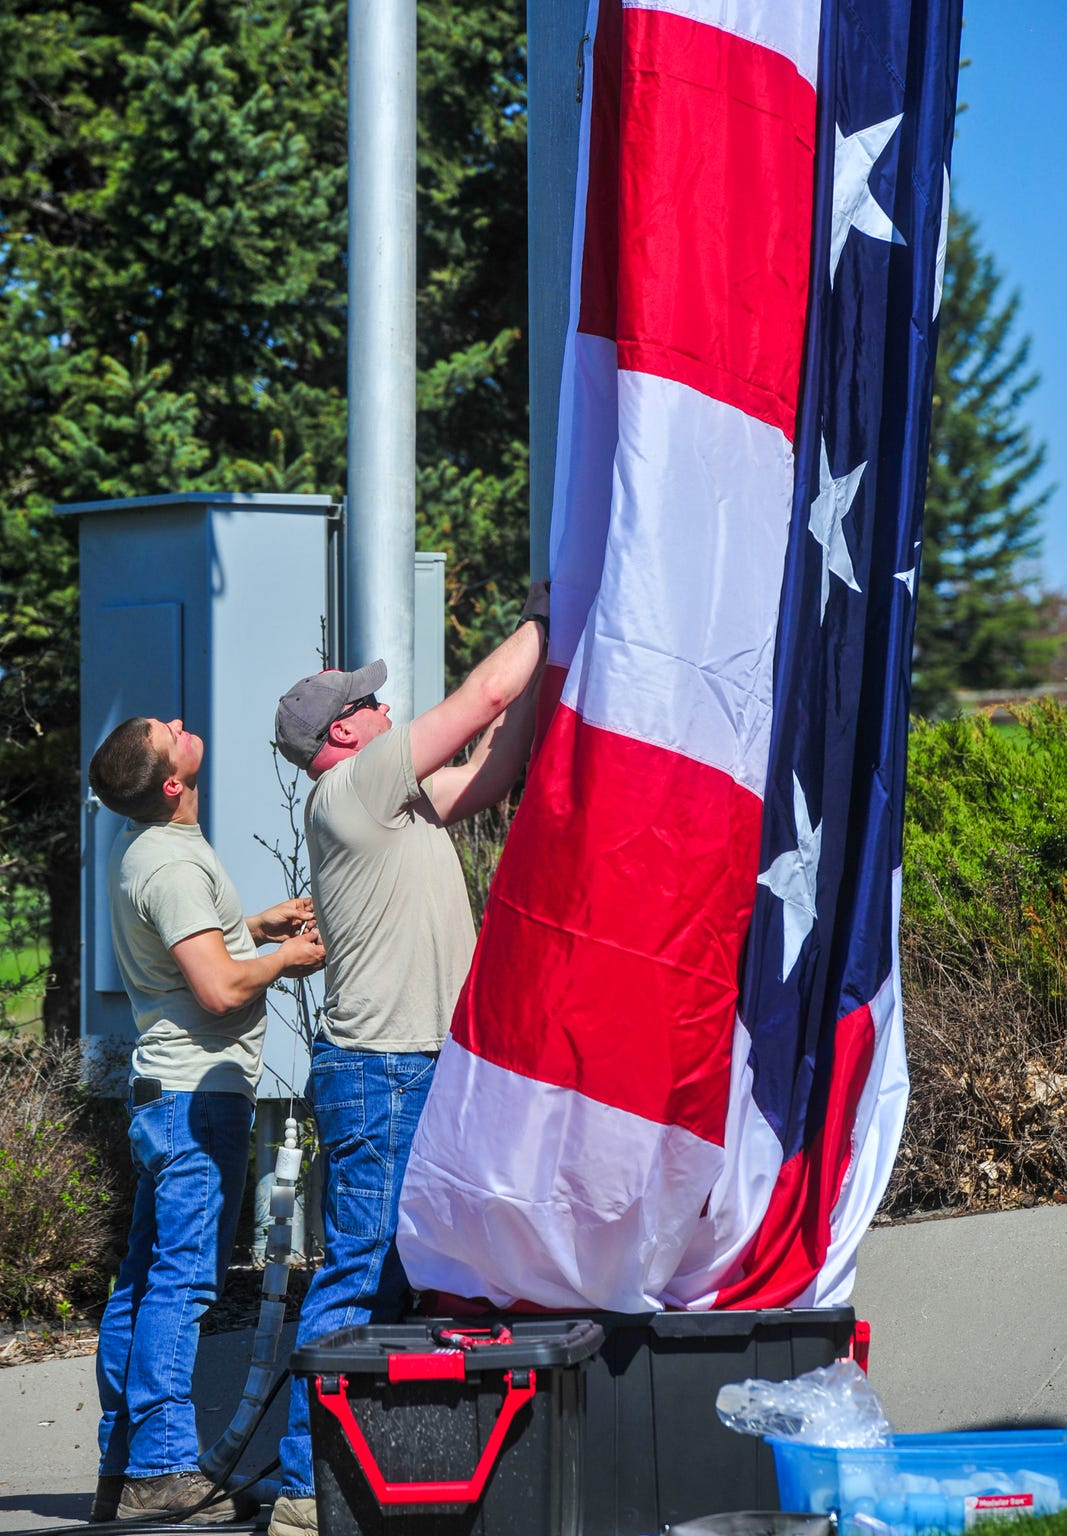 Master Sergeant Mark Snodgrass, right, and Tech Sergeant Kevyn Waite replace the flag at Broadwater Overlook Park Tuesday, May 28, 2019. The flags are changed out on a regular basis for cleaning and repairs.